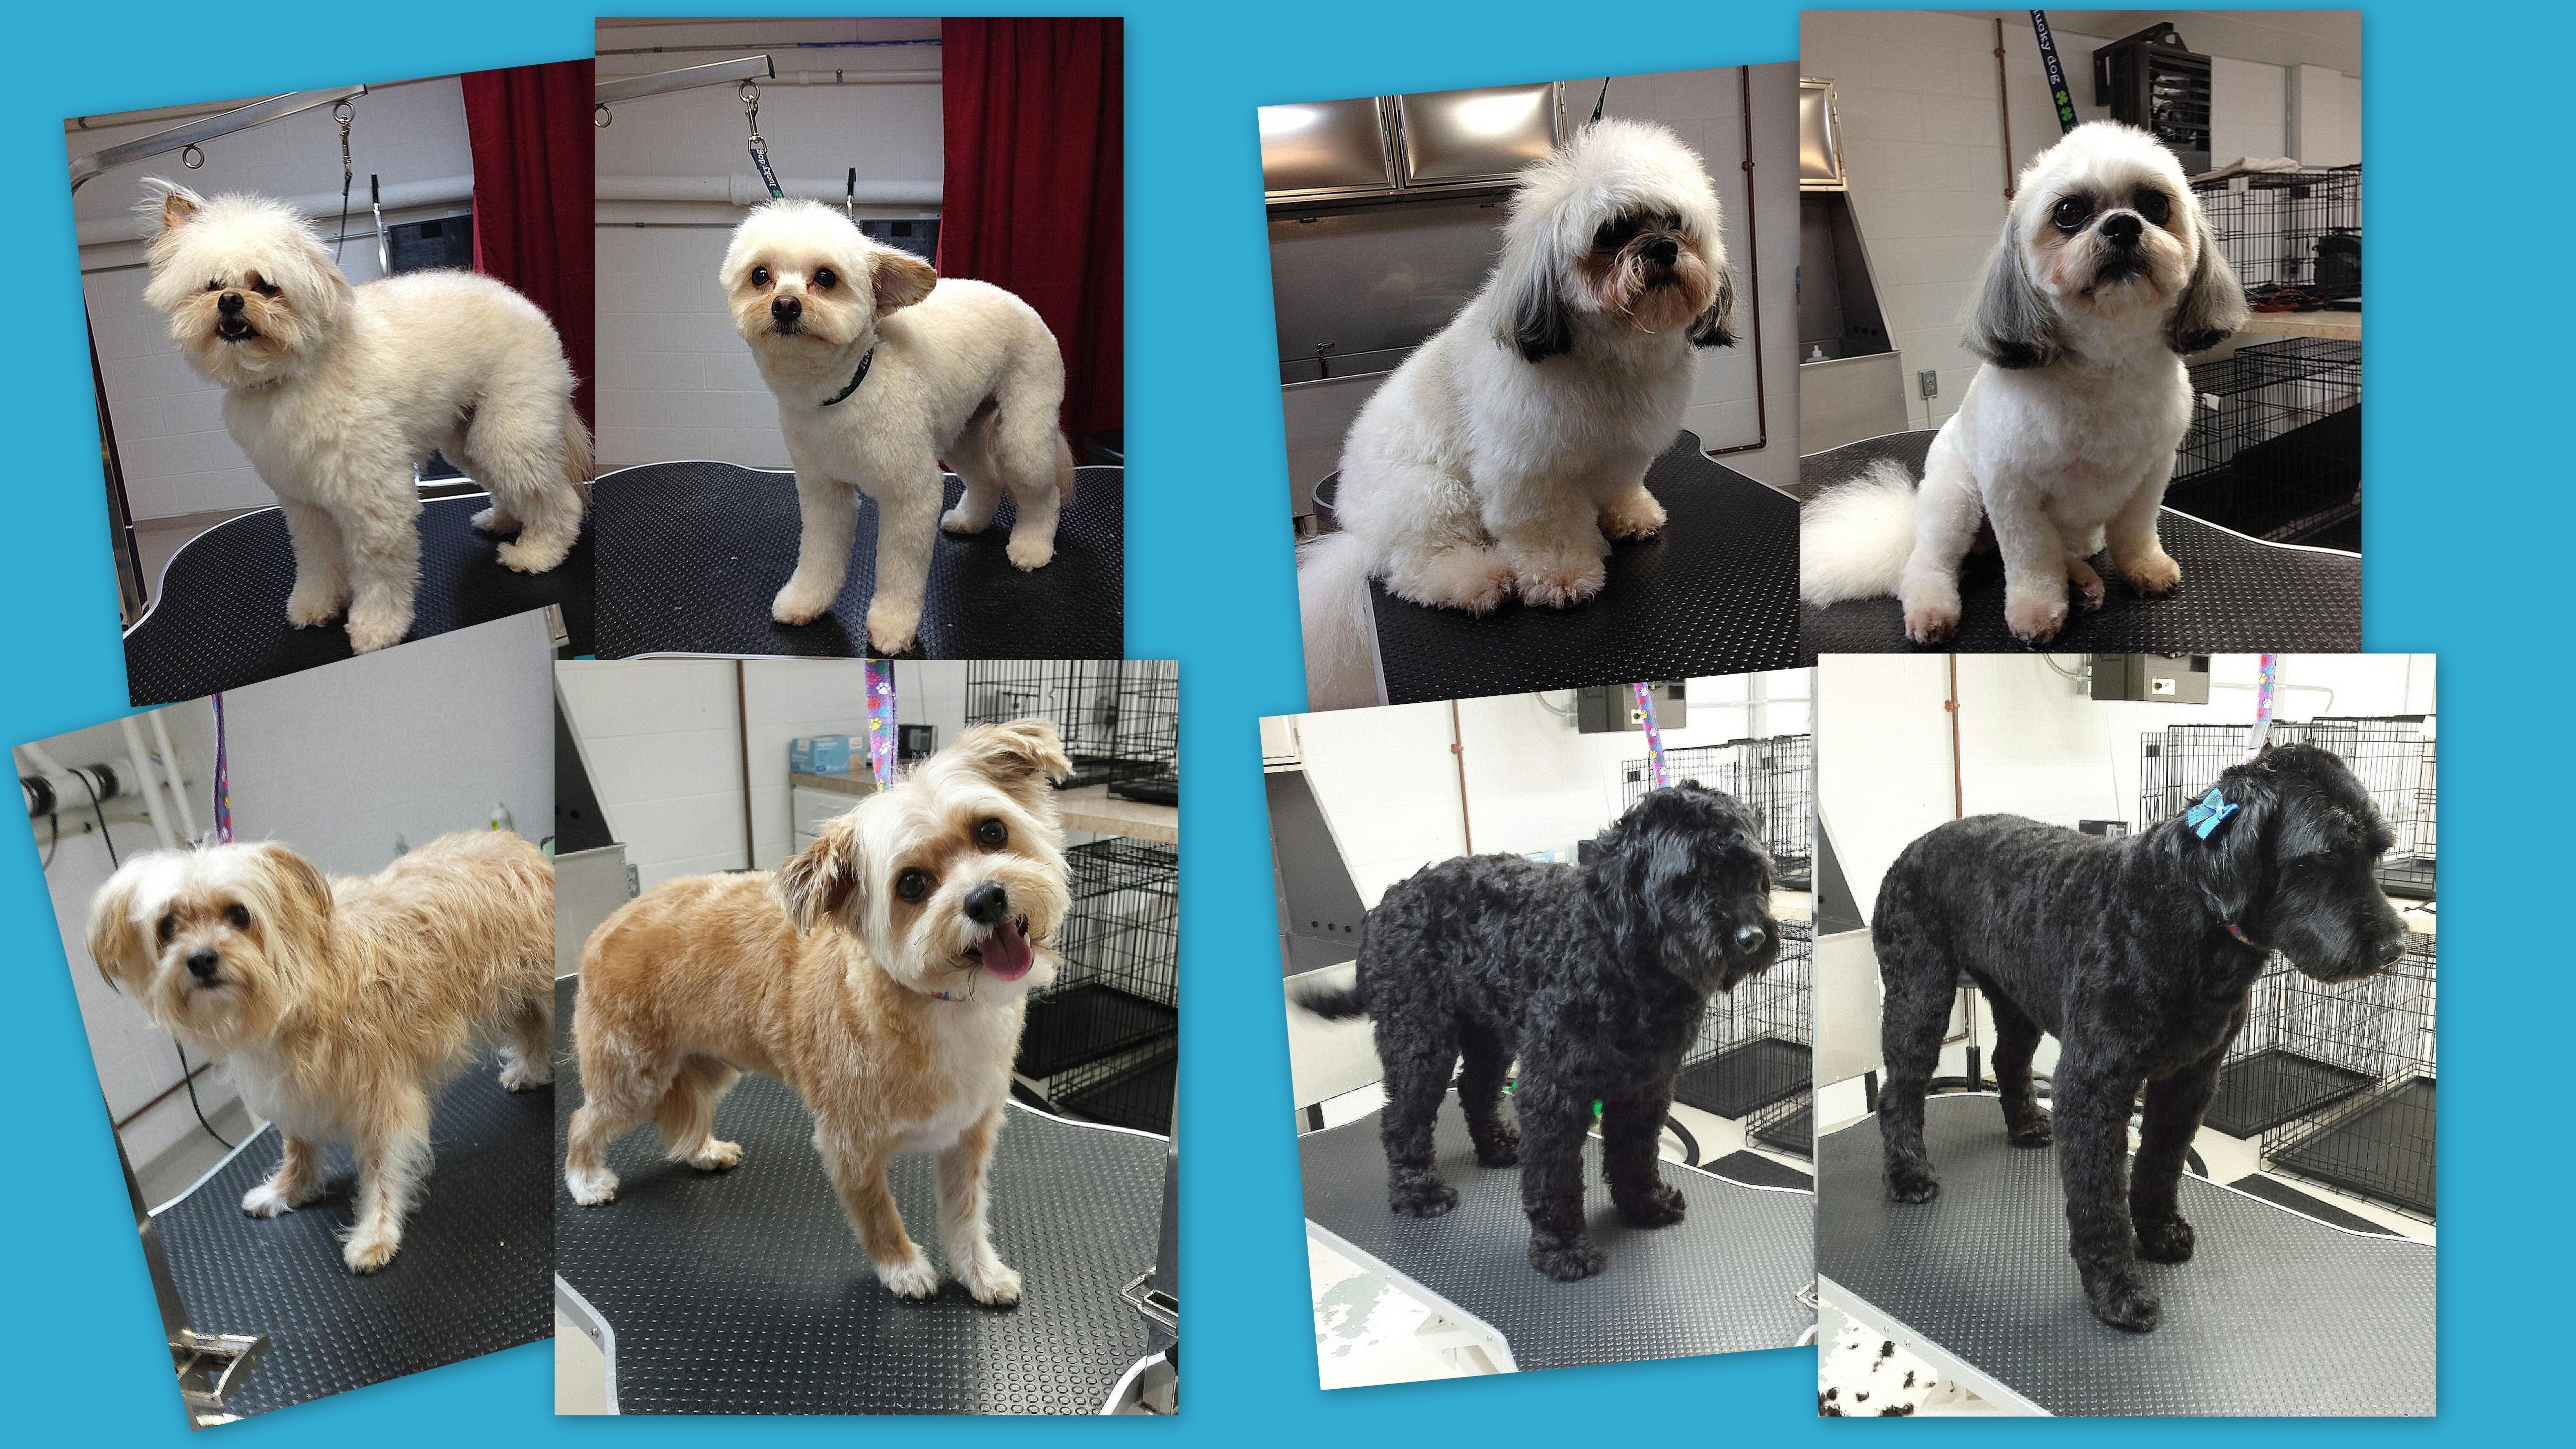 Dog grooming at Wags & Whiskers in La Crosse, WI